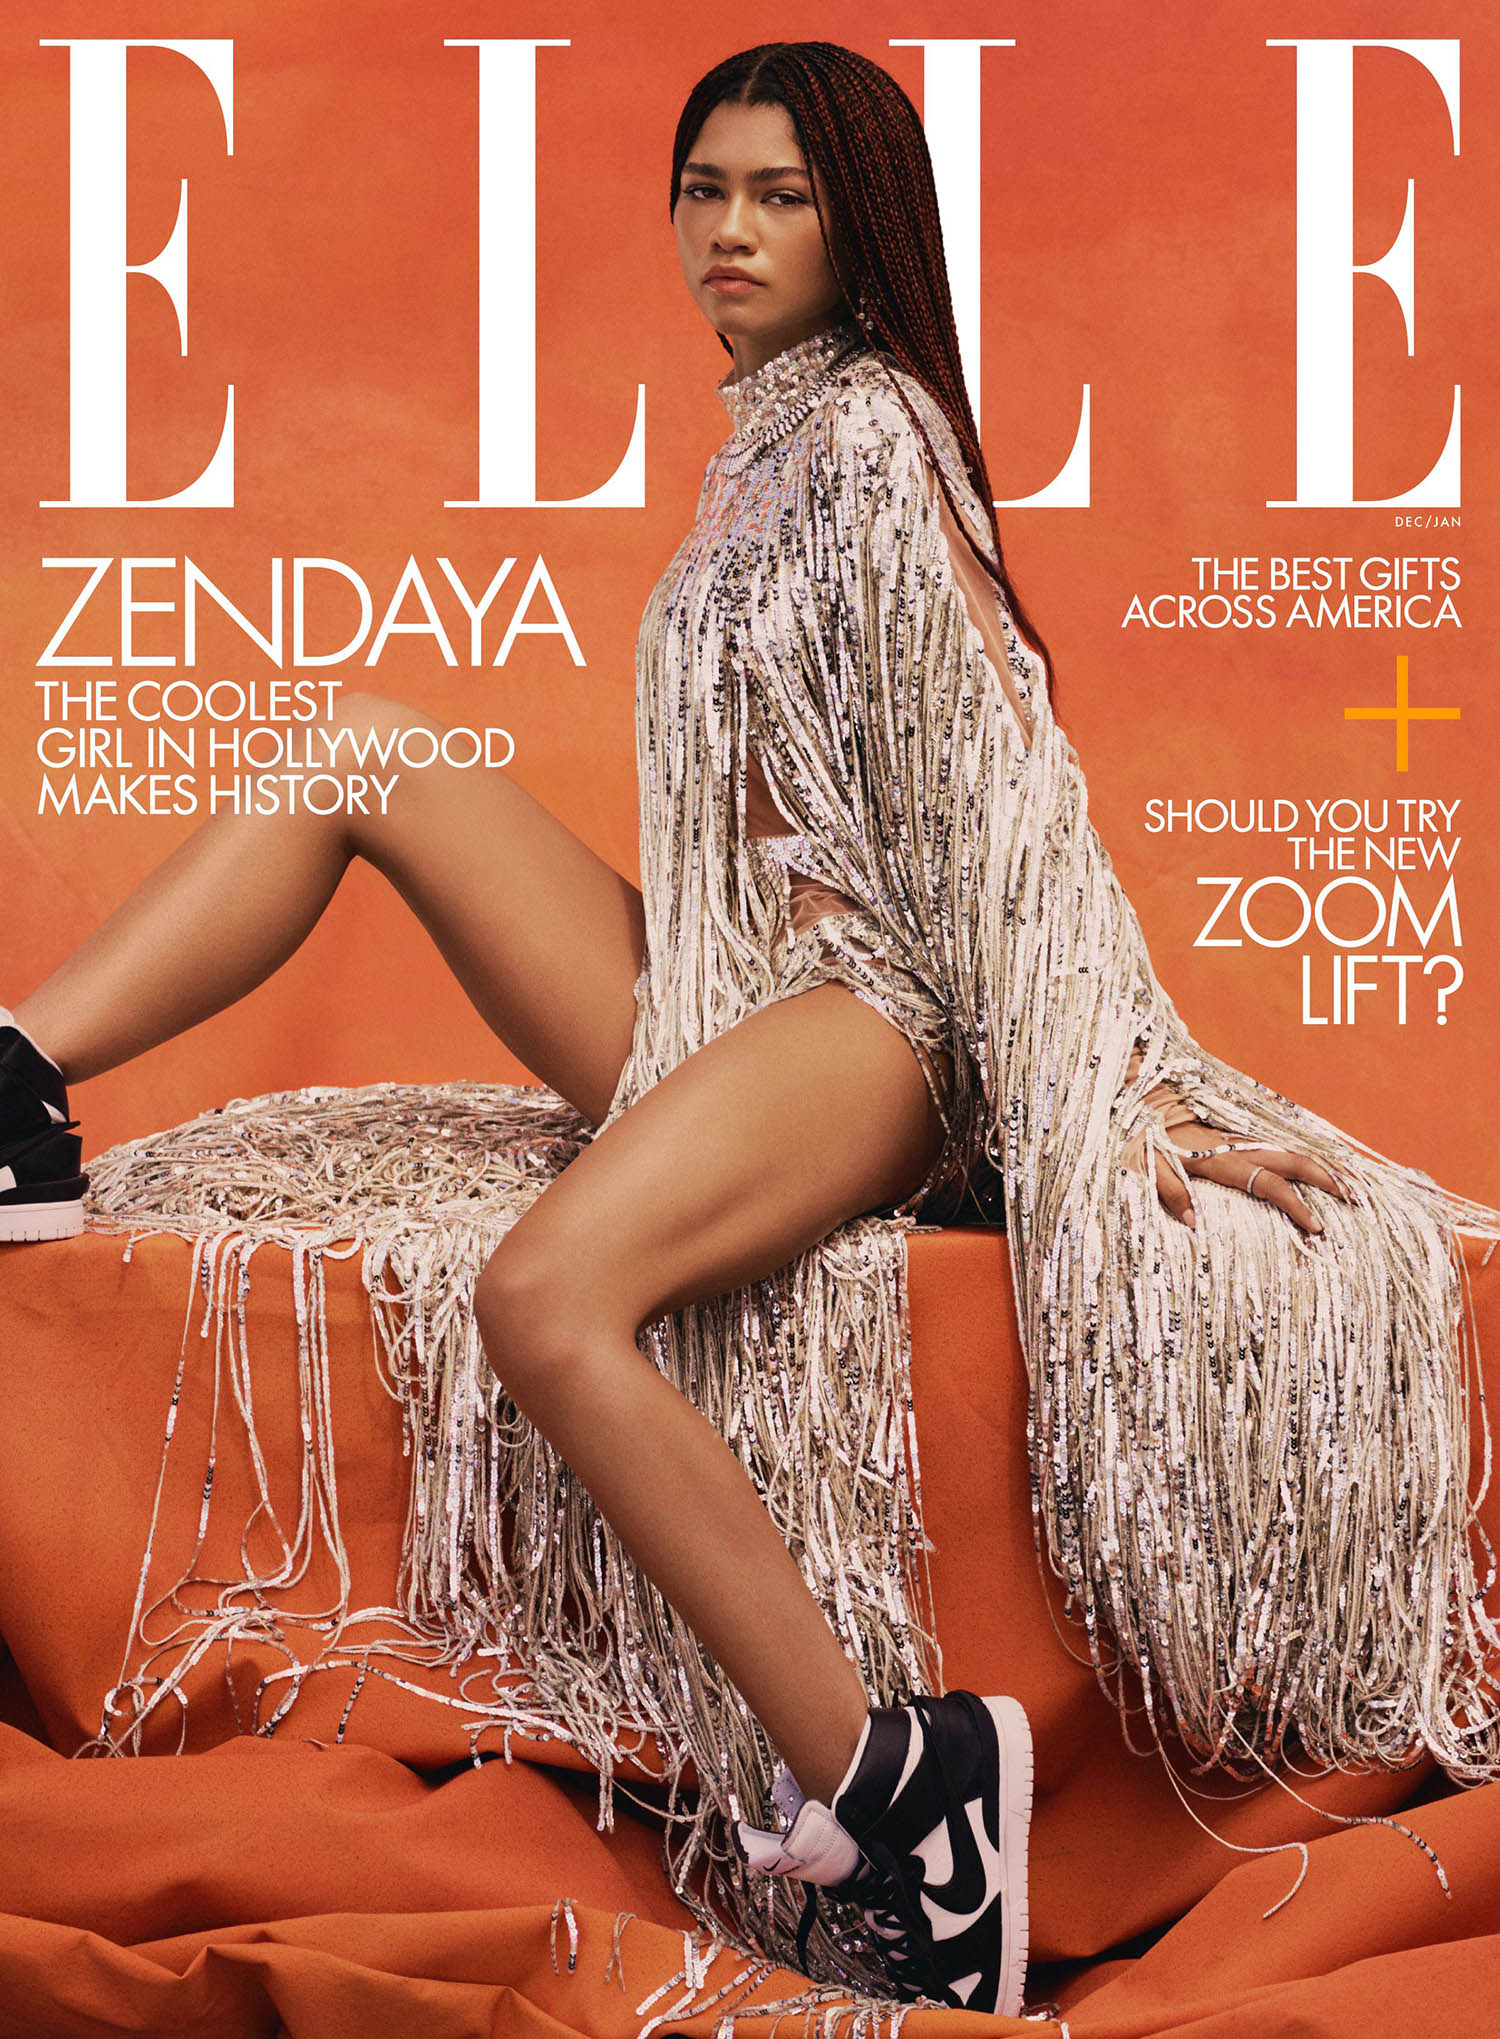 Zendaya covers Elle US December 2020 January 2021 by Micaiah Carter